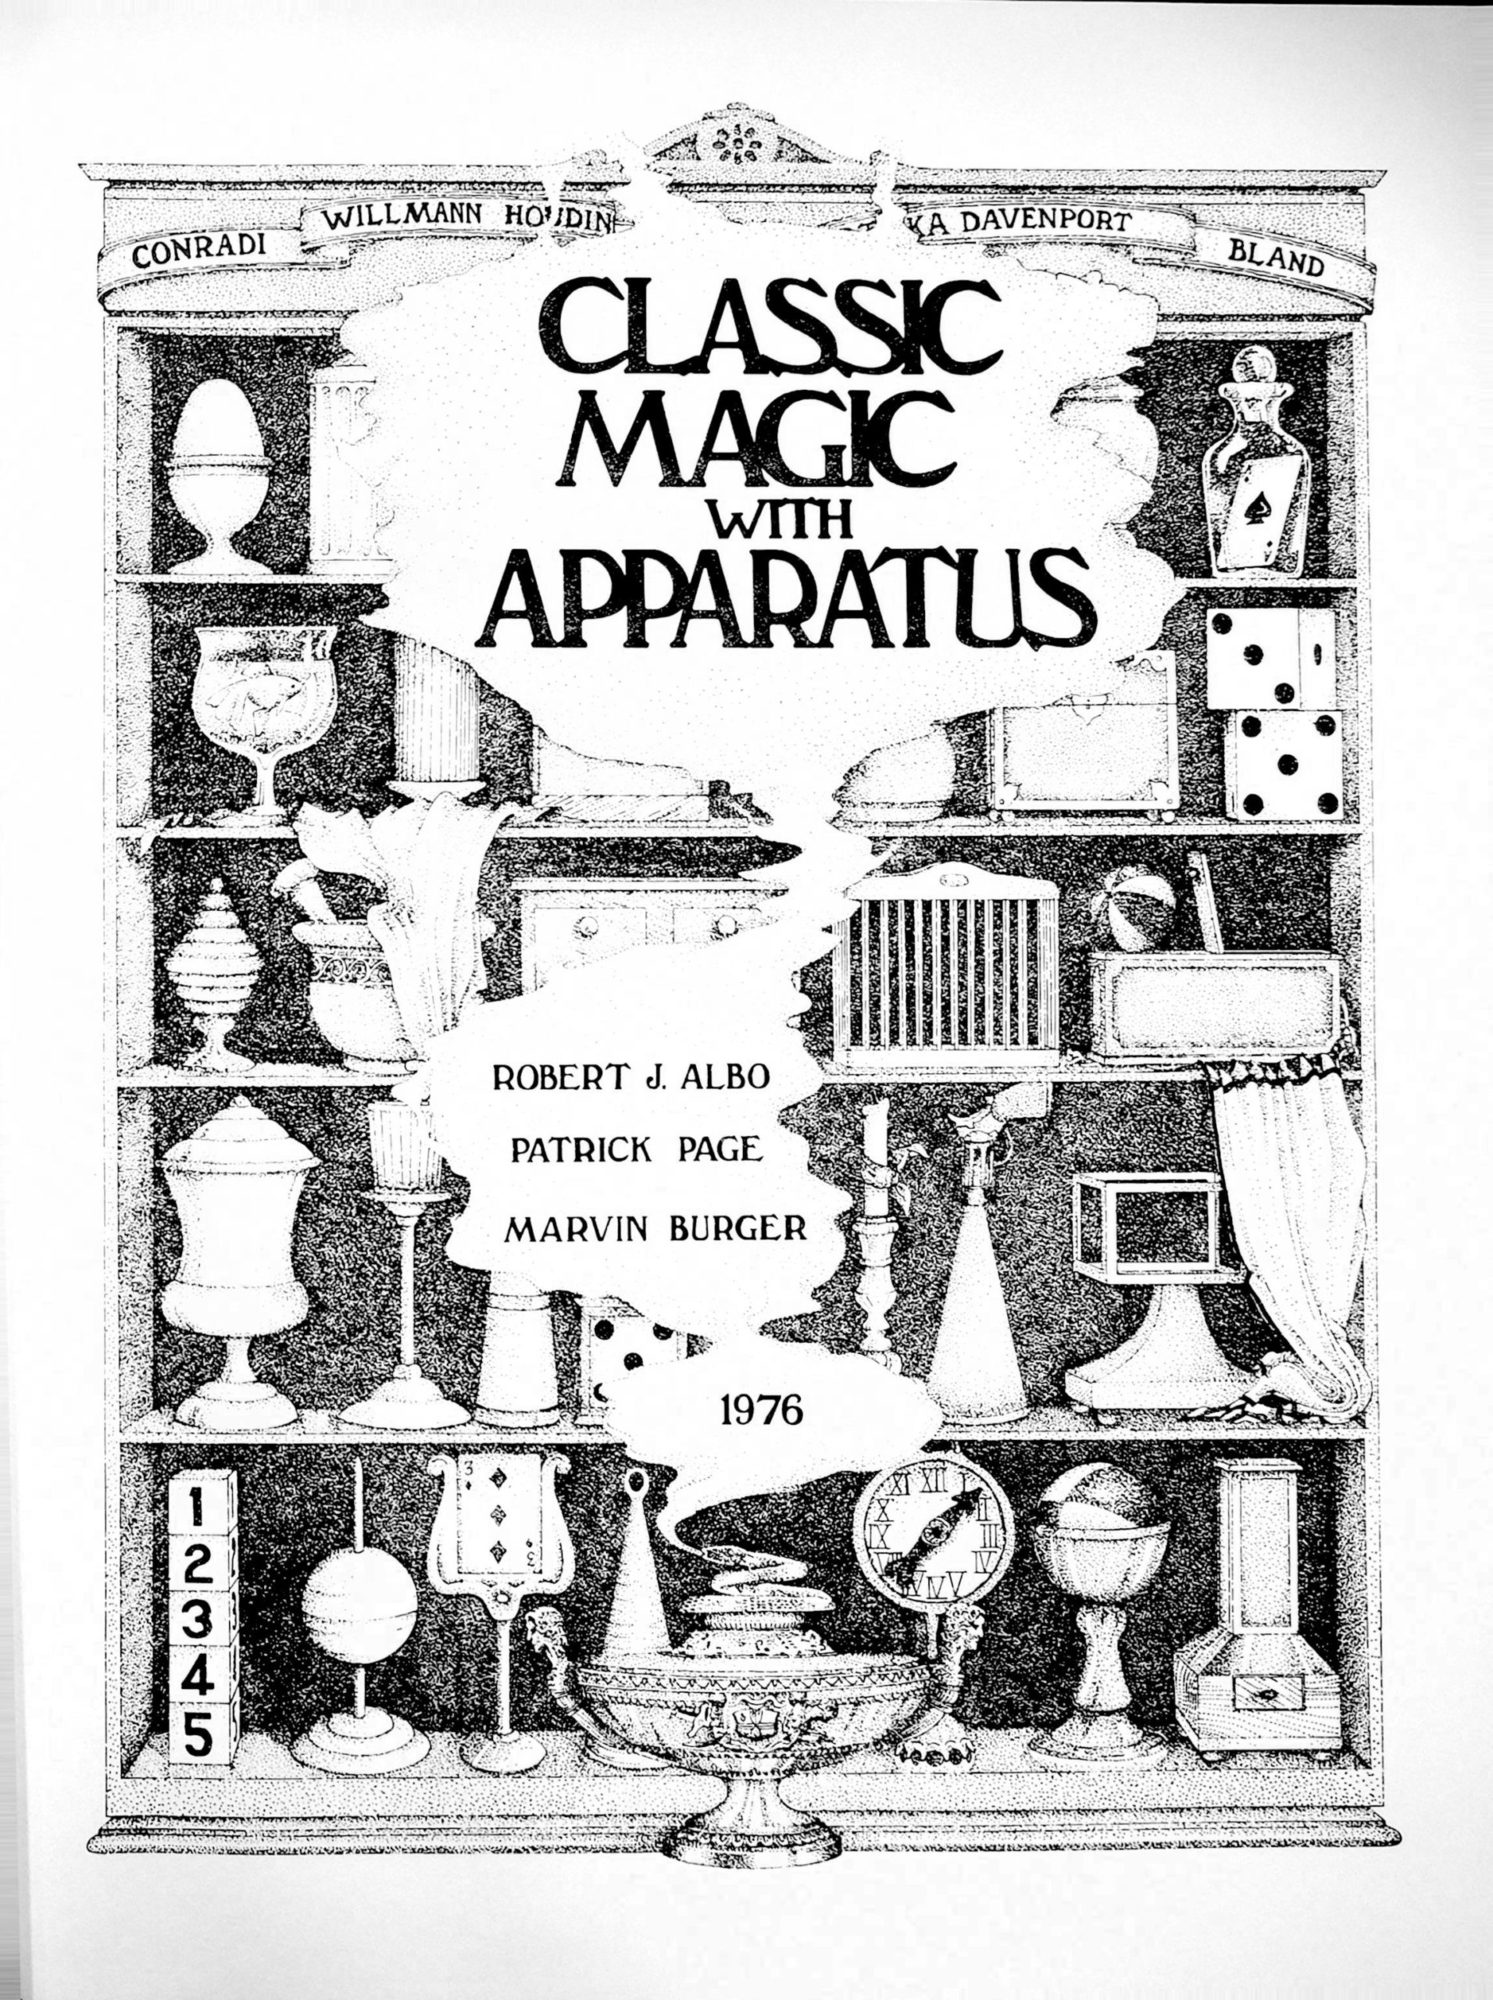 Albo 02 - Classic Magic With Apparatus by Robert J. Albo,  Patrick Page, Marvin Burger